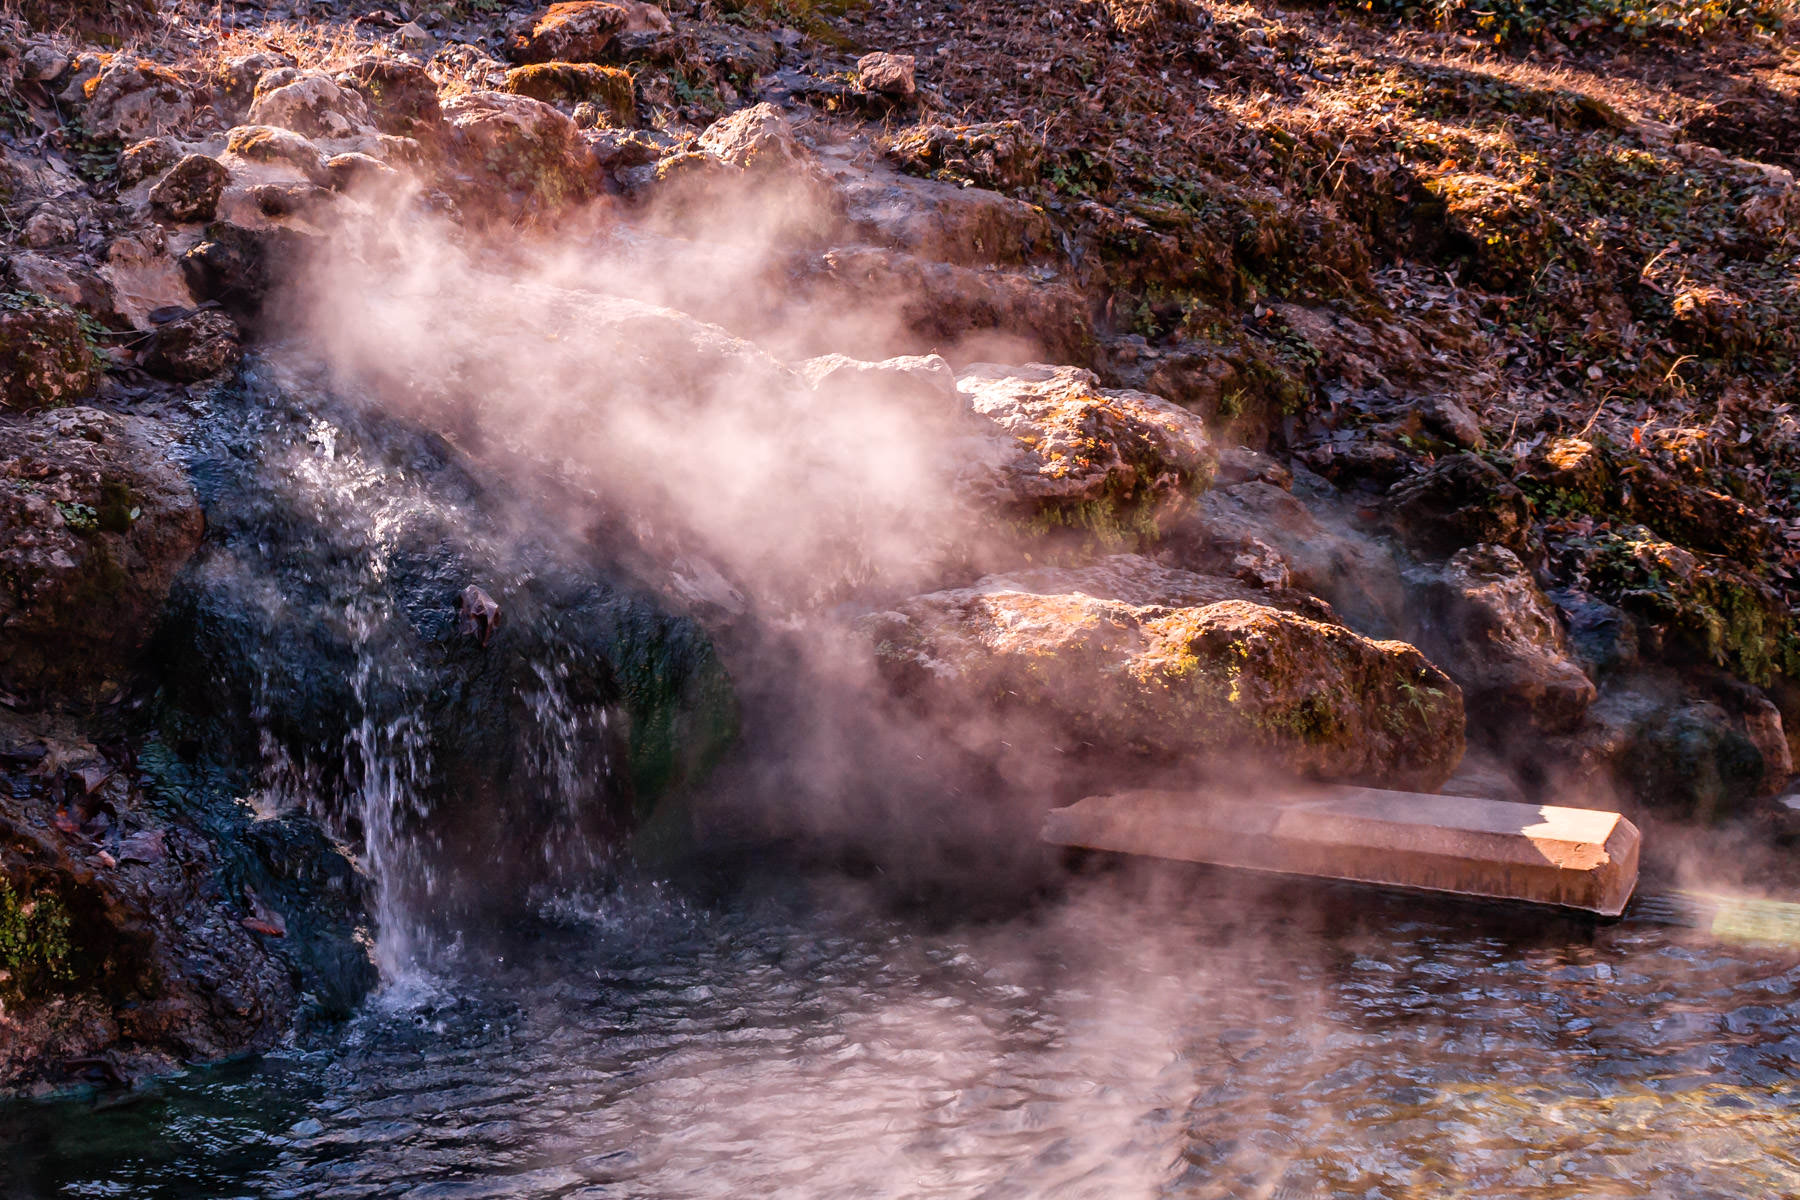 Steam pours from a hot spring in the aptly-named Hot Springs, Arkansas.